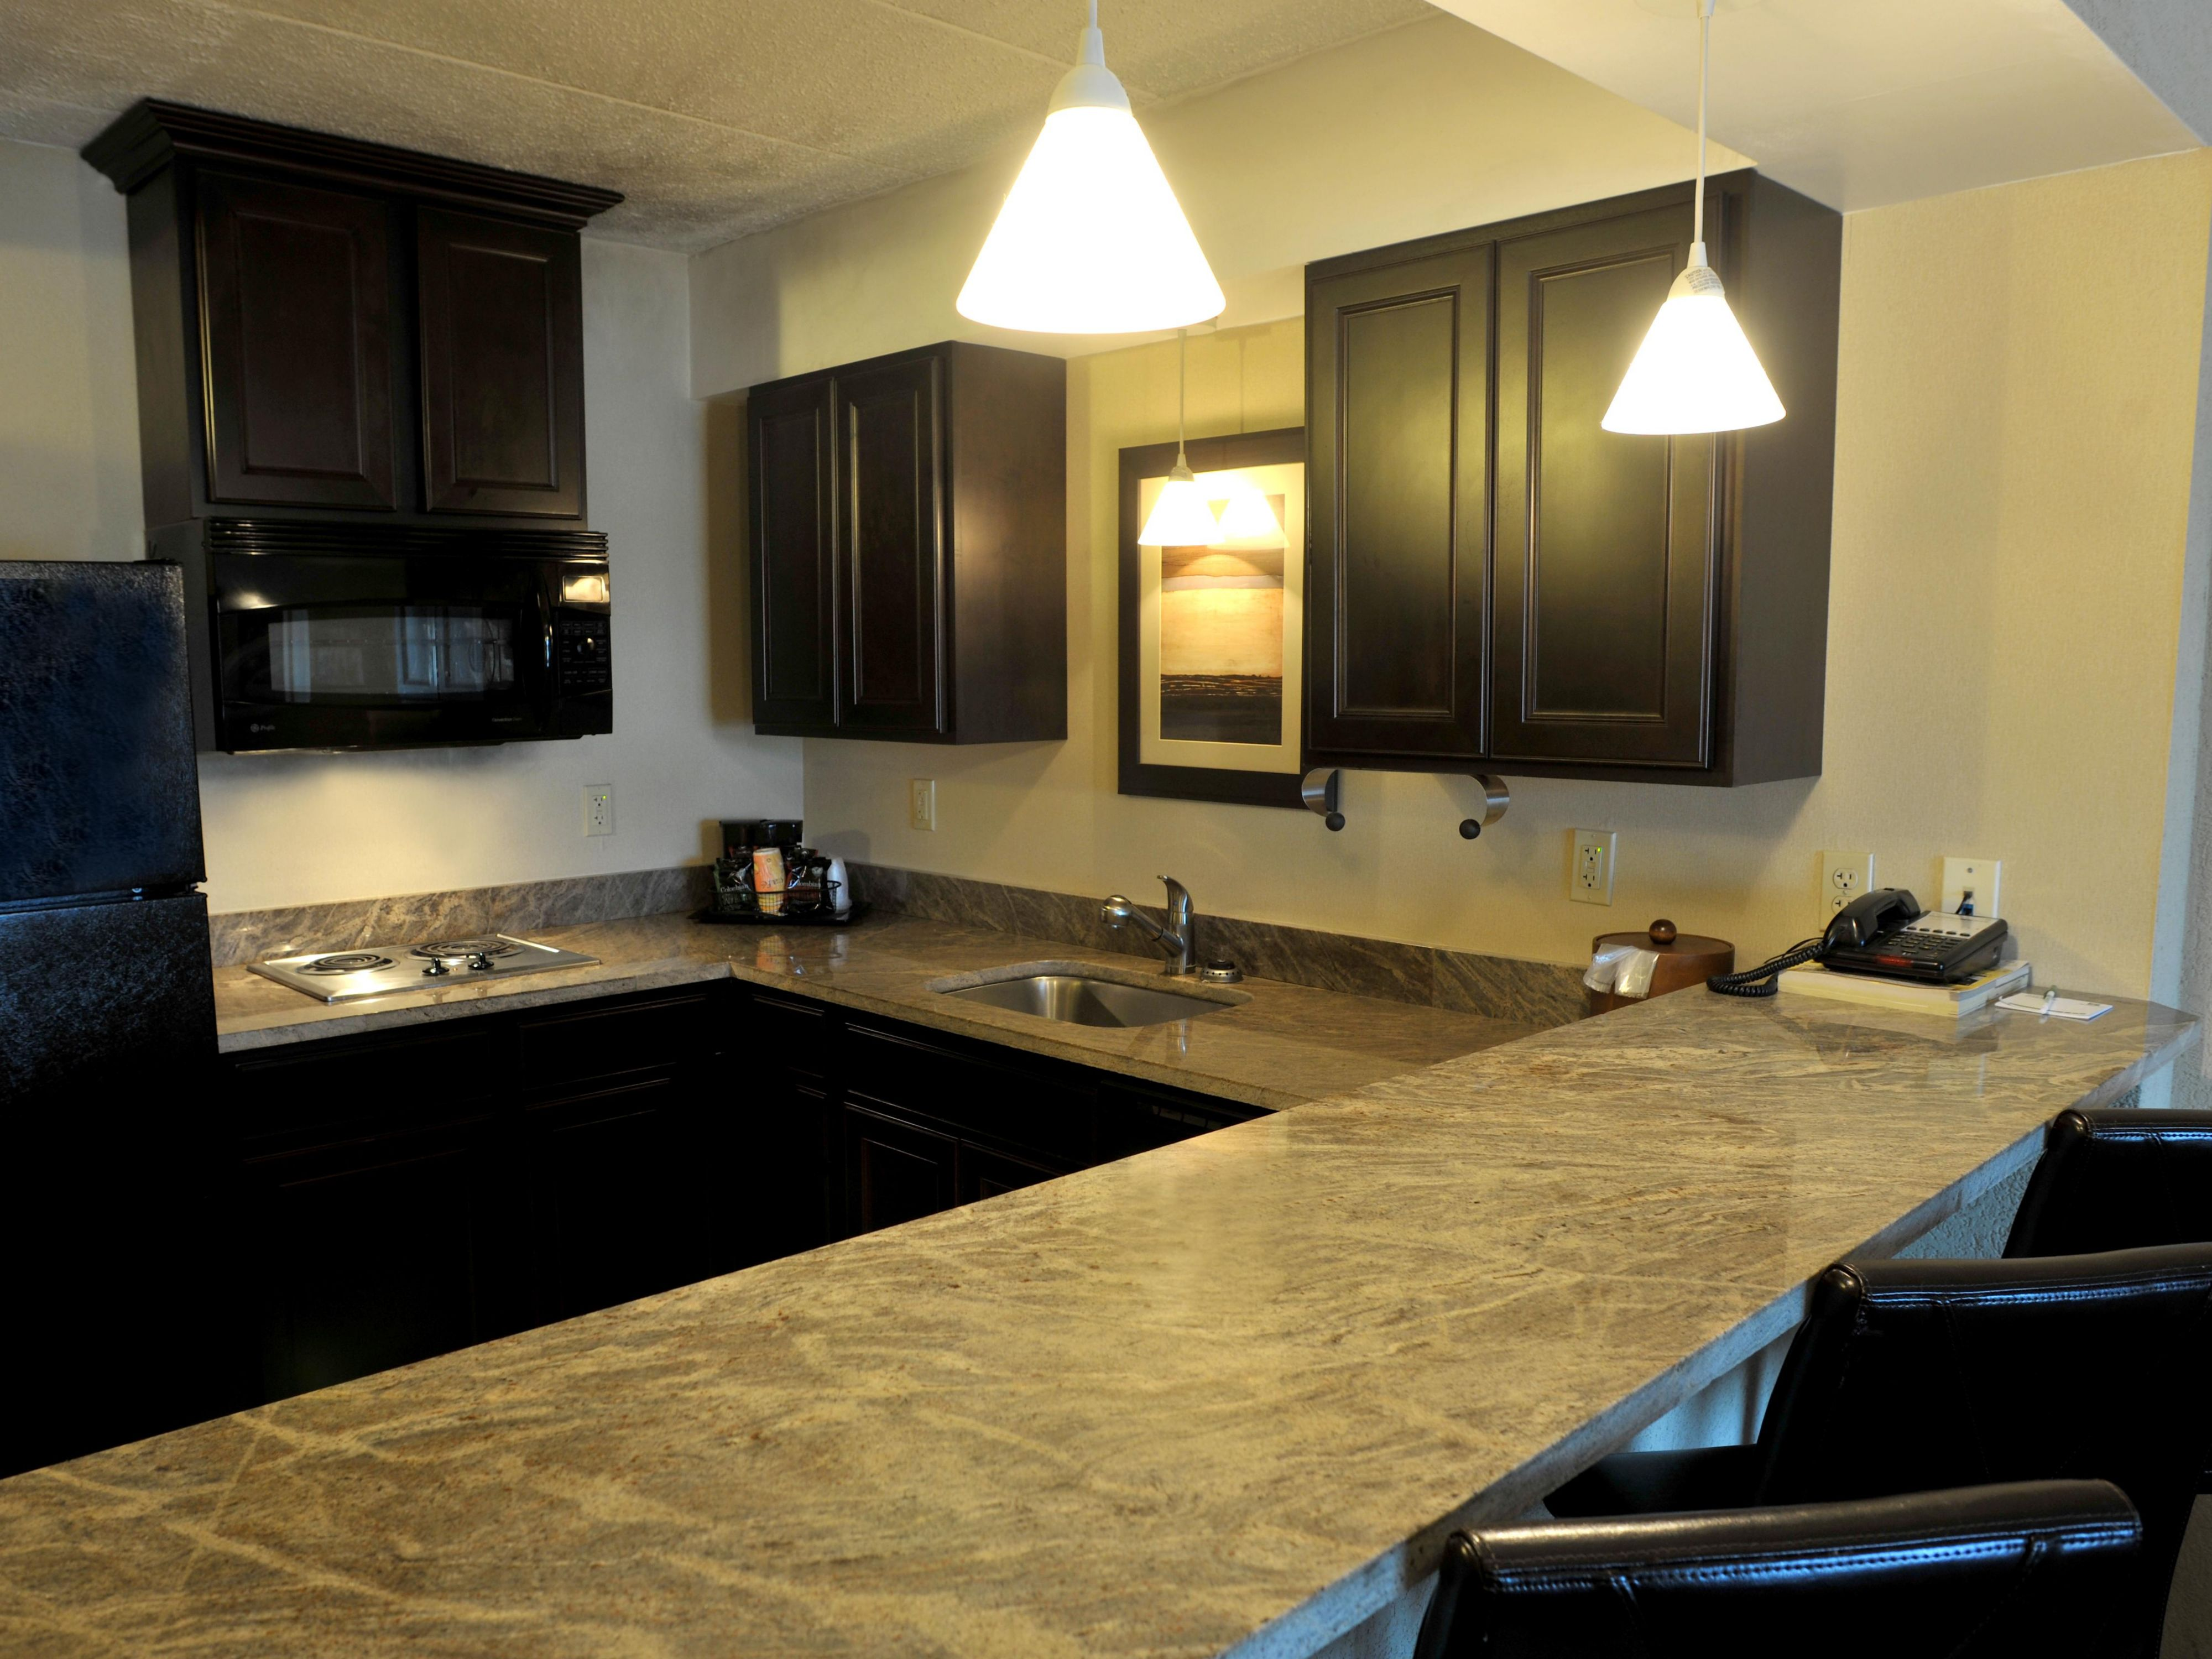 Suites have full kitchens available for guest use